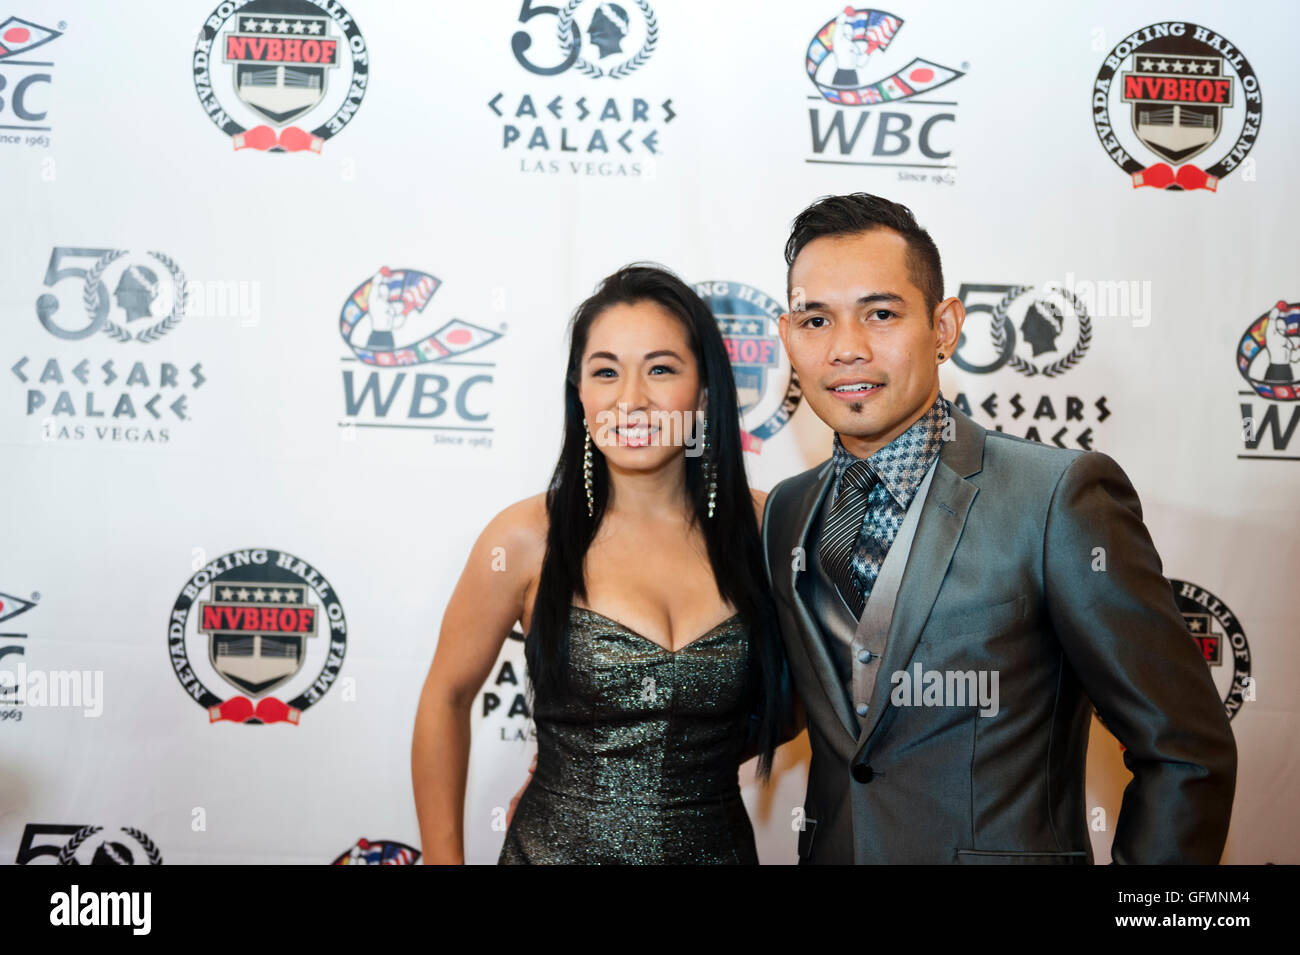 Las Vegas, Nevada, USA. 30th July, 2016. Nonito Donaire on the red carpet at the 4th Annual Nevada Boxing Hall of - Stock Image